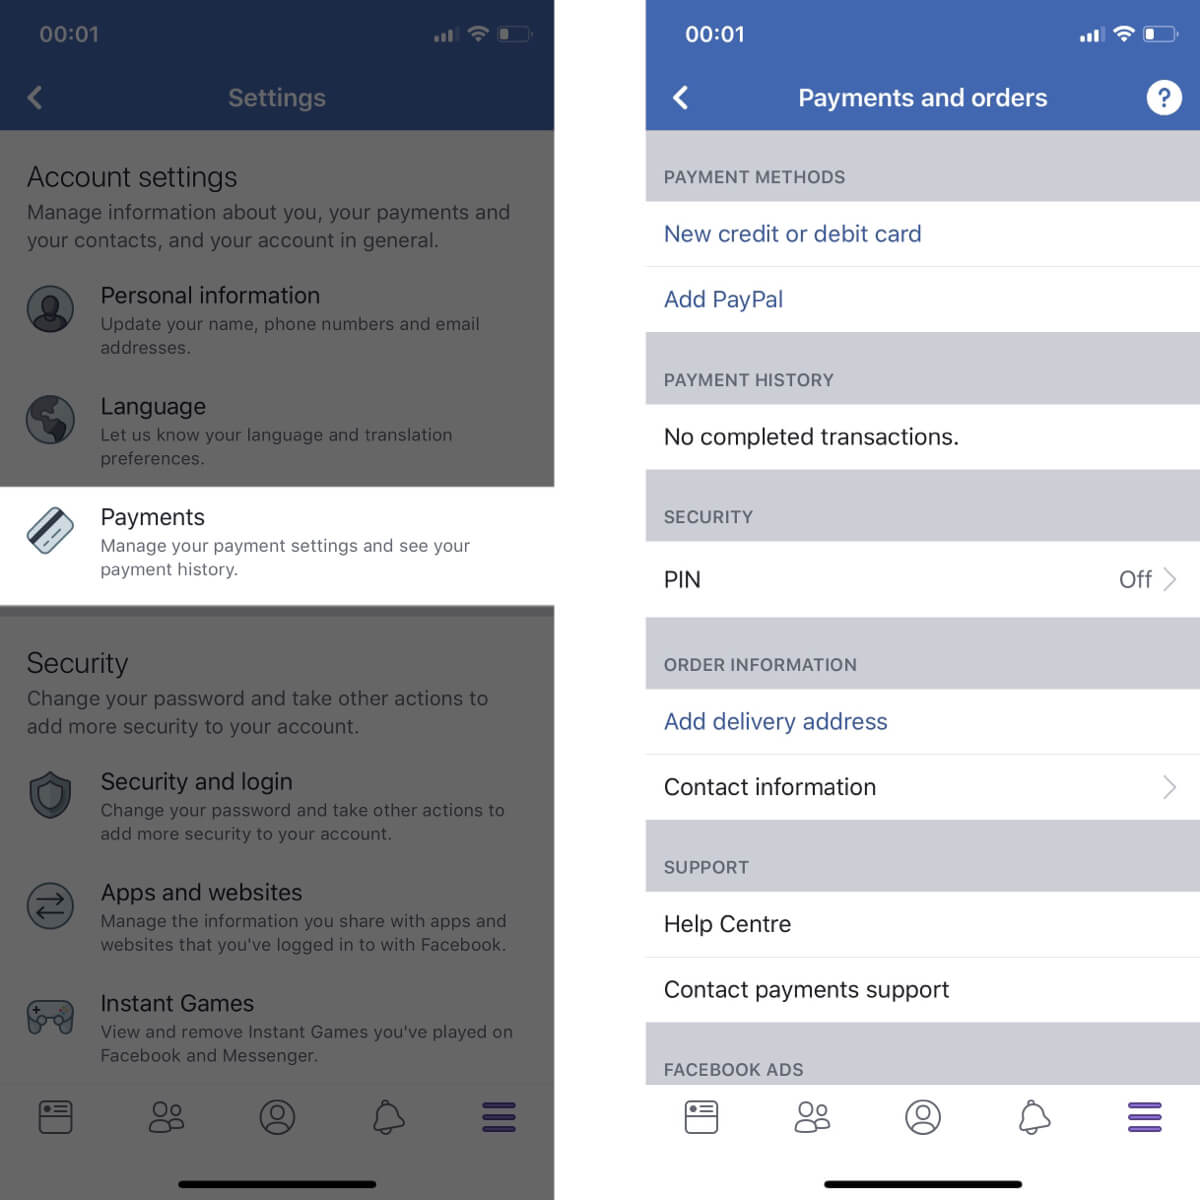 Screenshots showing how to access your payment settings on Facebook.